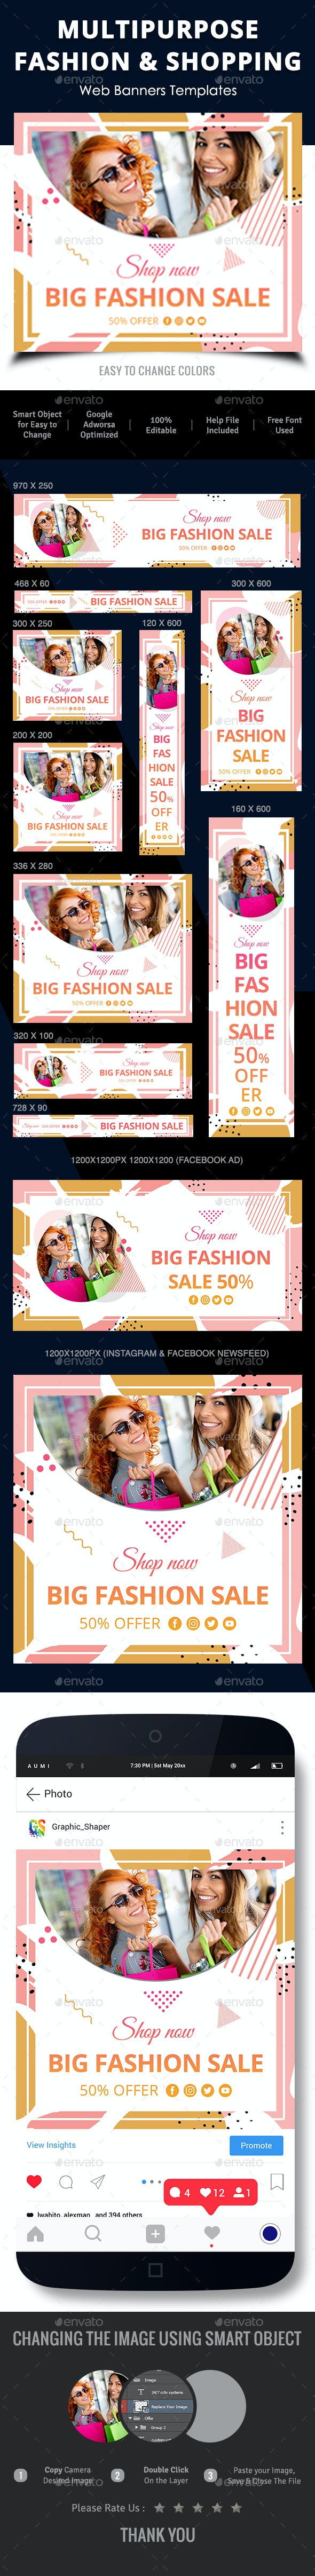 Multipurpose Fashion & Shopping Web Banners - Banners & Ads Web Elements